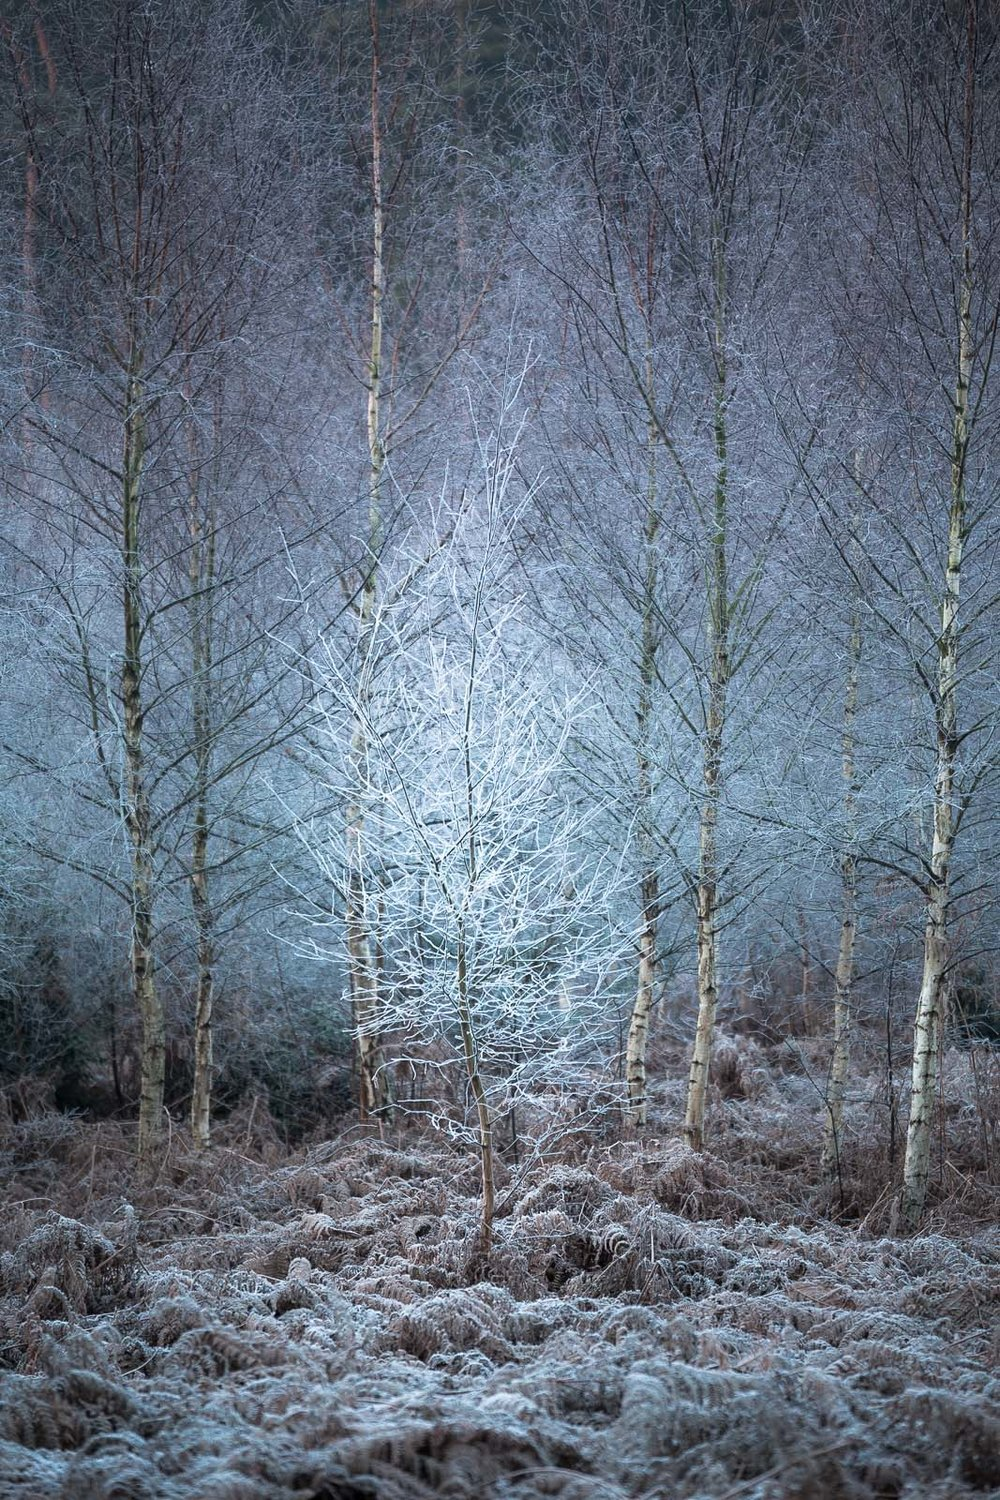 004 - Frostiest Tree in the Forest.jpg